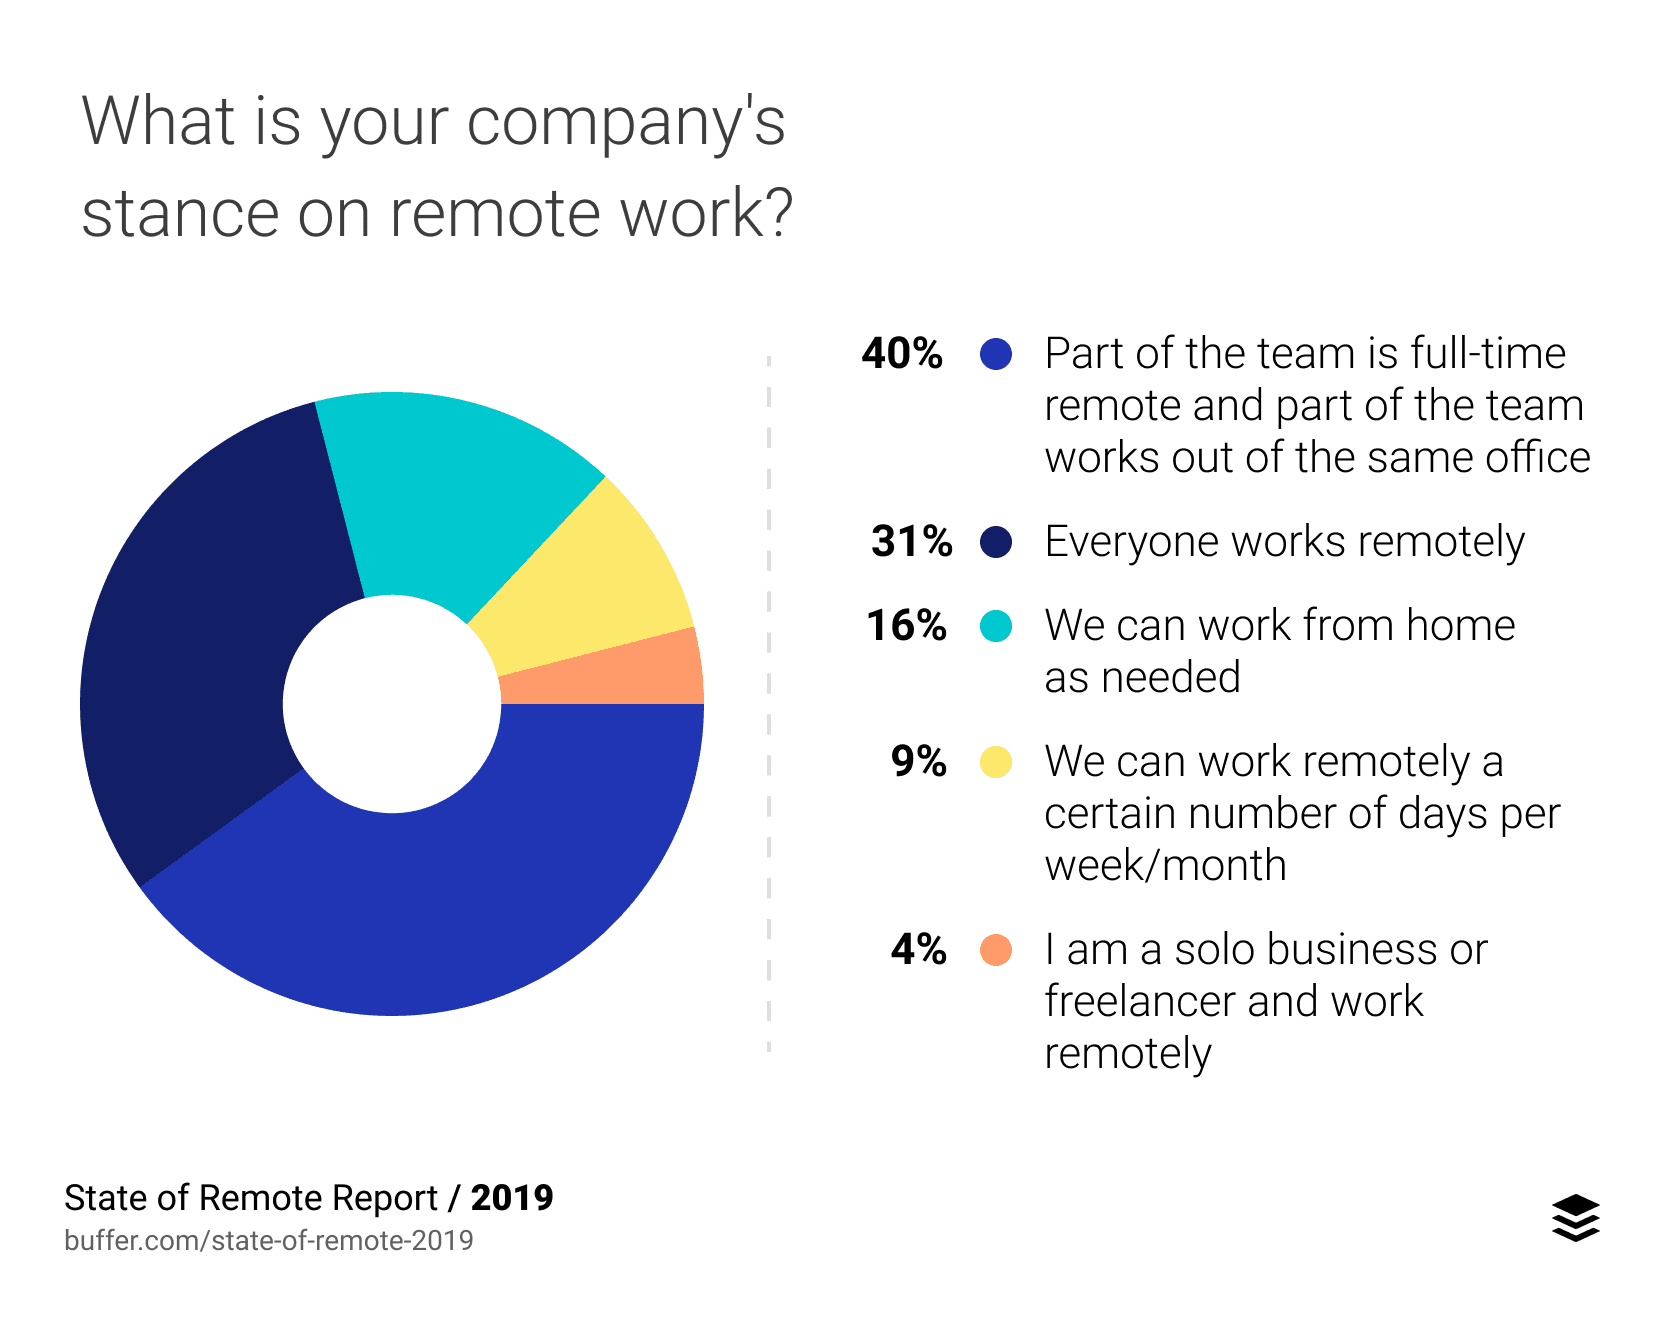 company stance on remote work